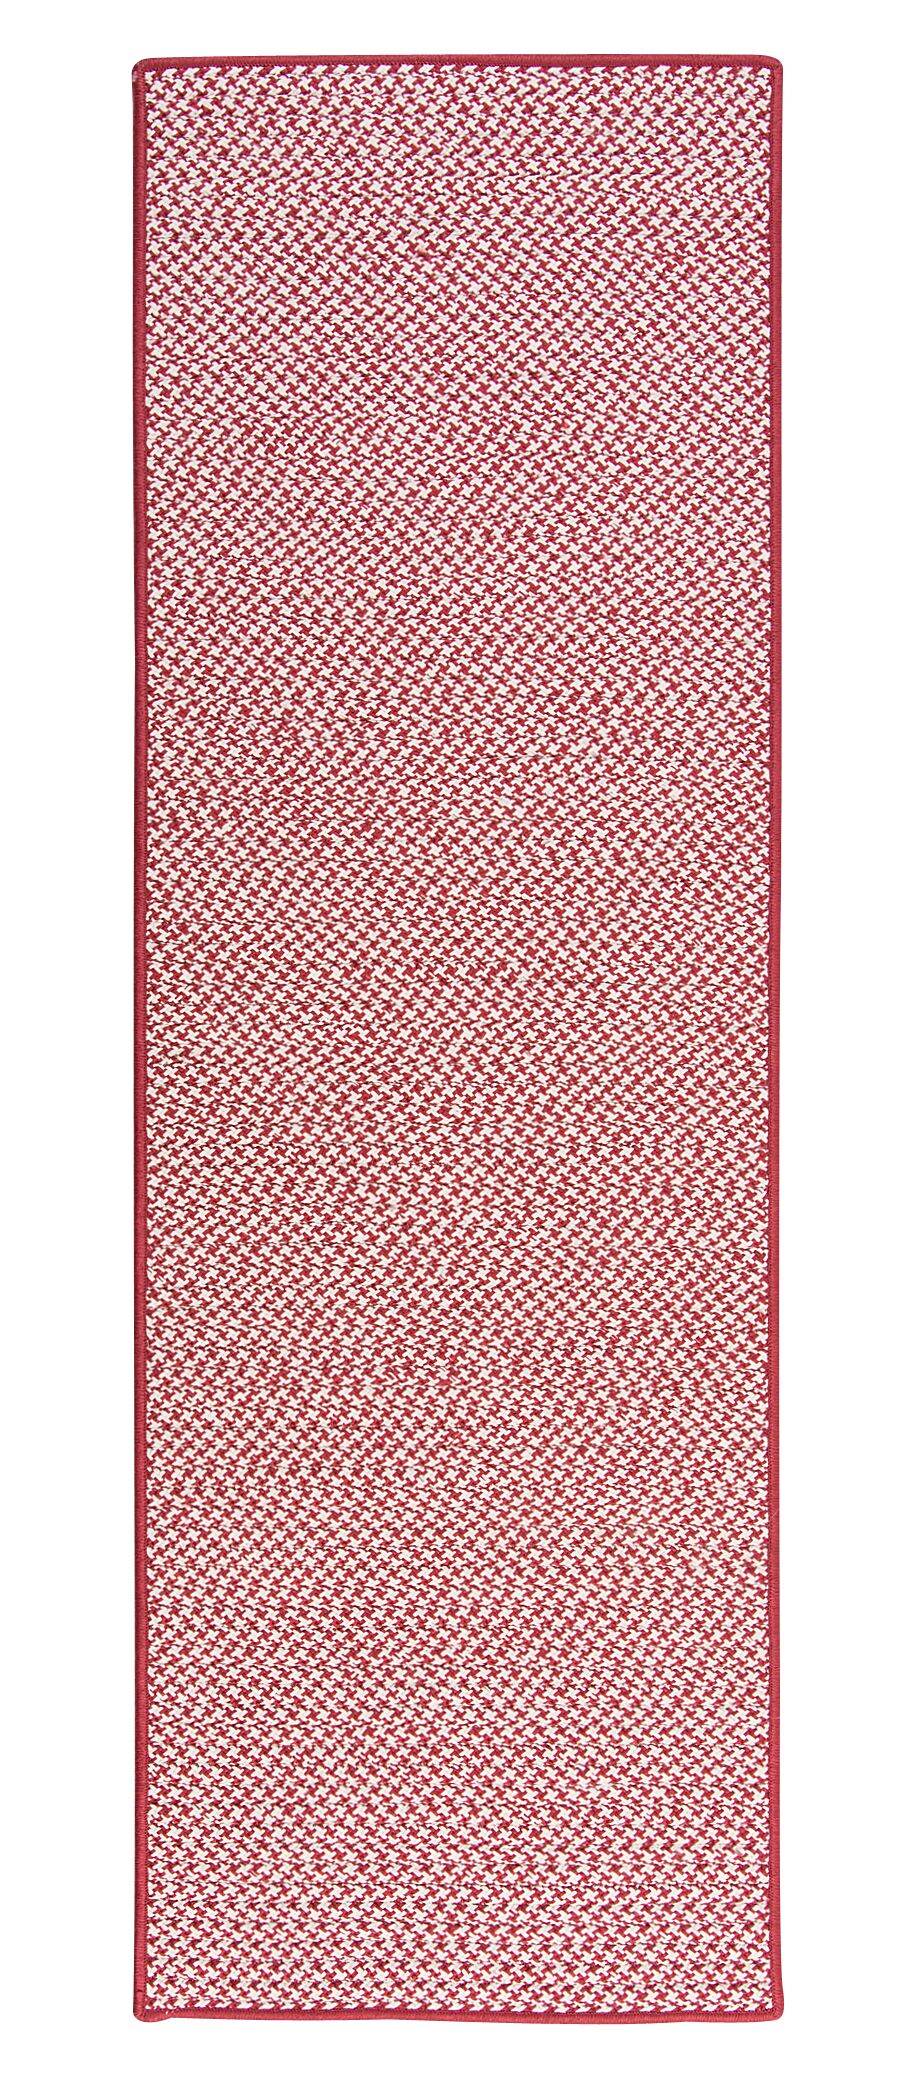 Duane Hand-Braided Red Indoor/Outdoor Area Rug Rug Size: Runner 2'6